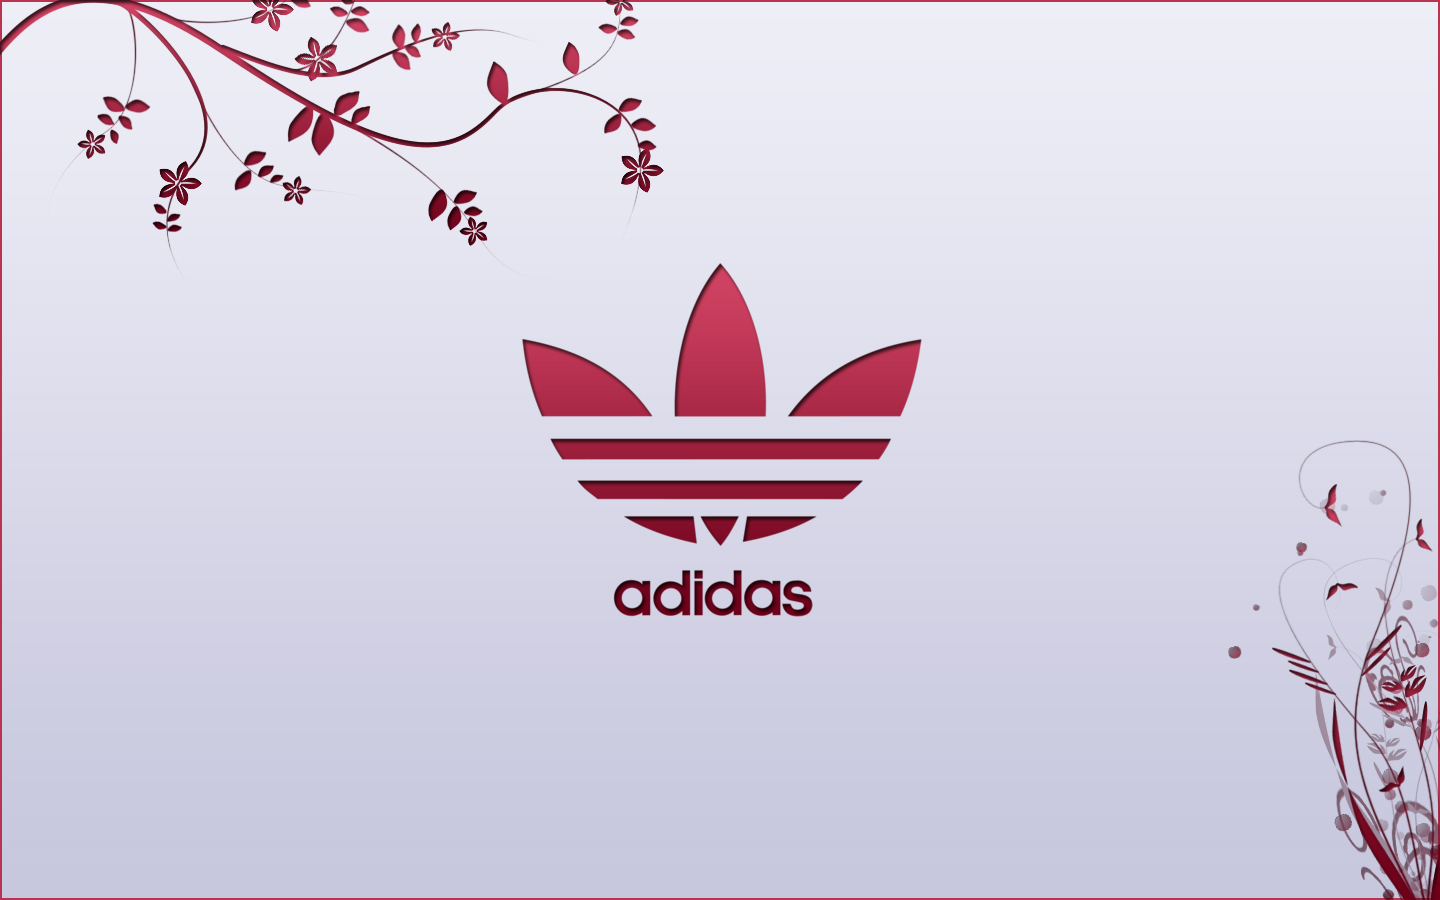 Adidas wallpaper floral For Desktop 1440x900